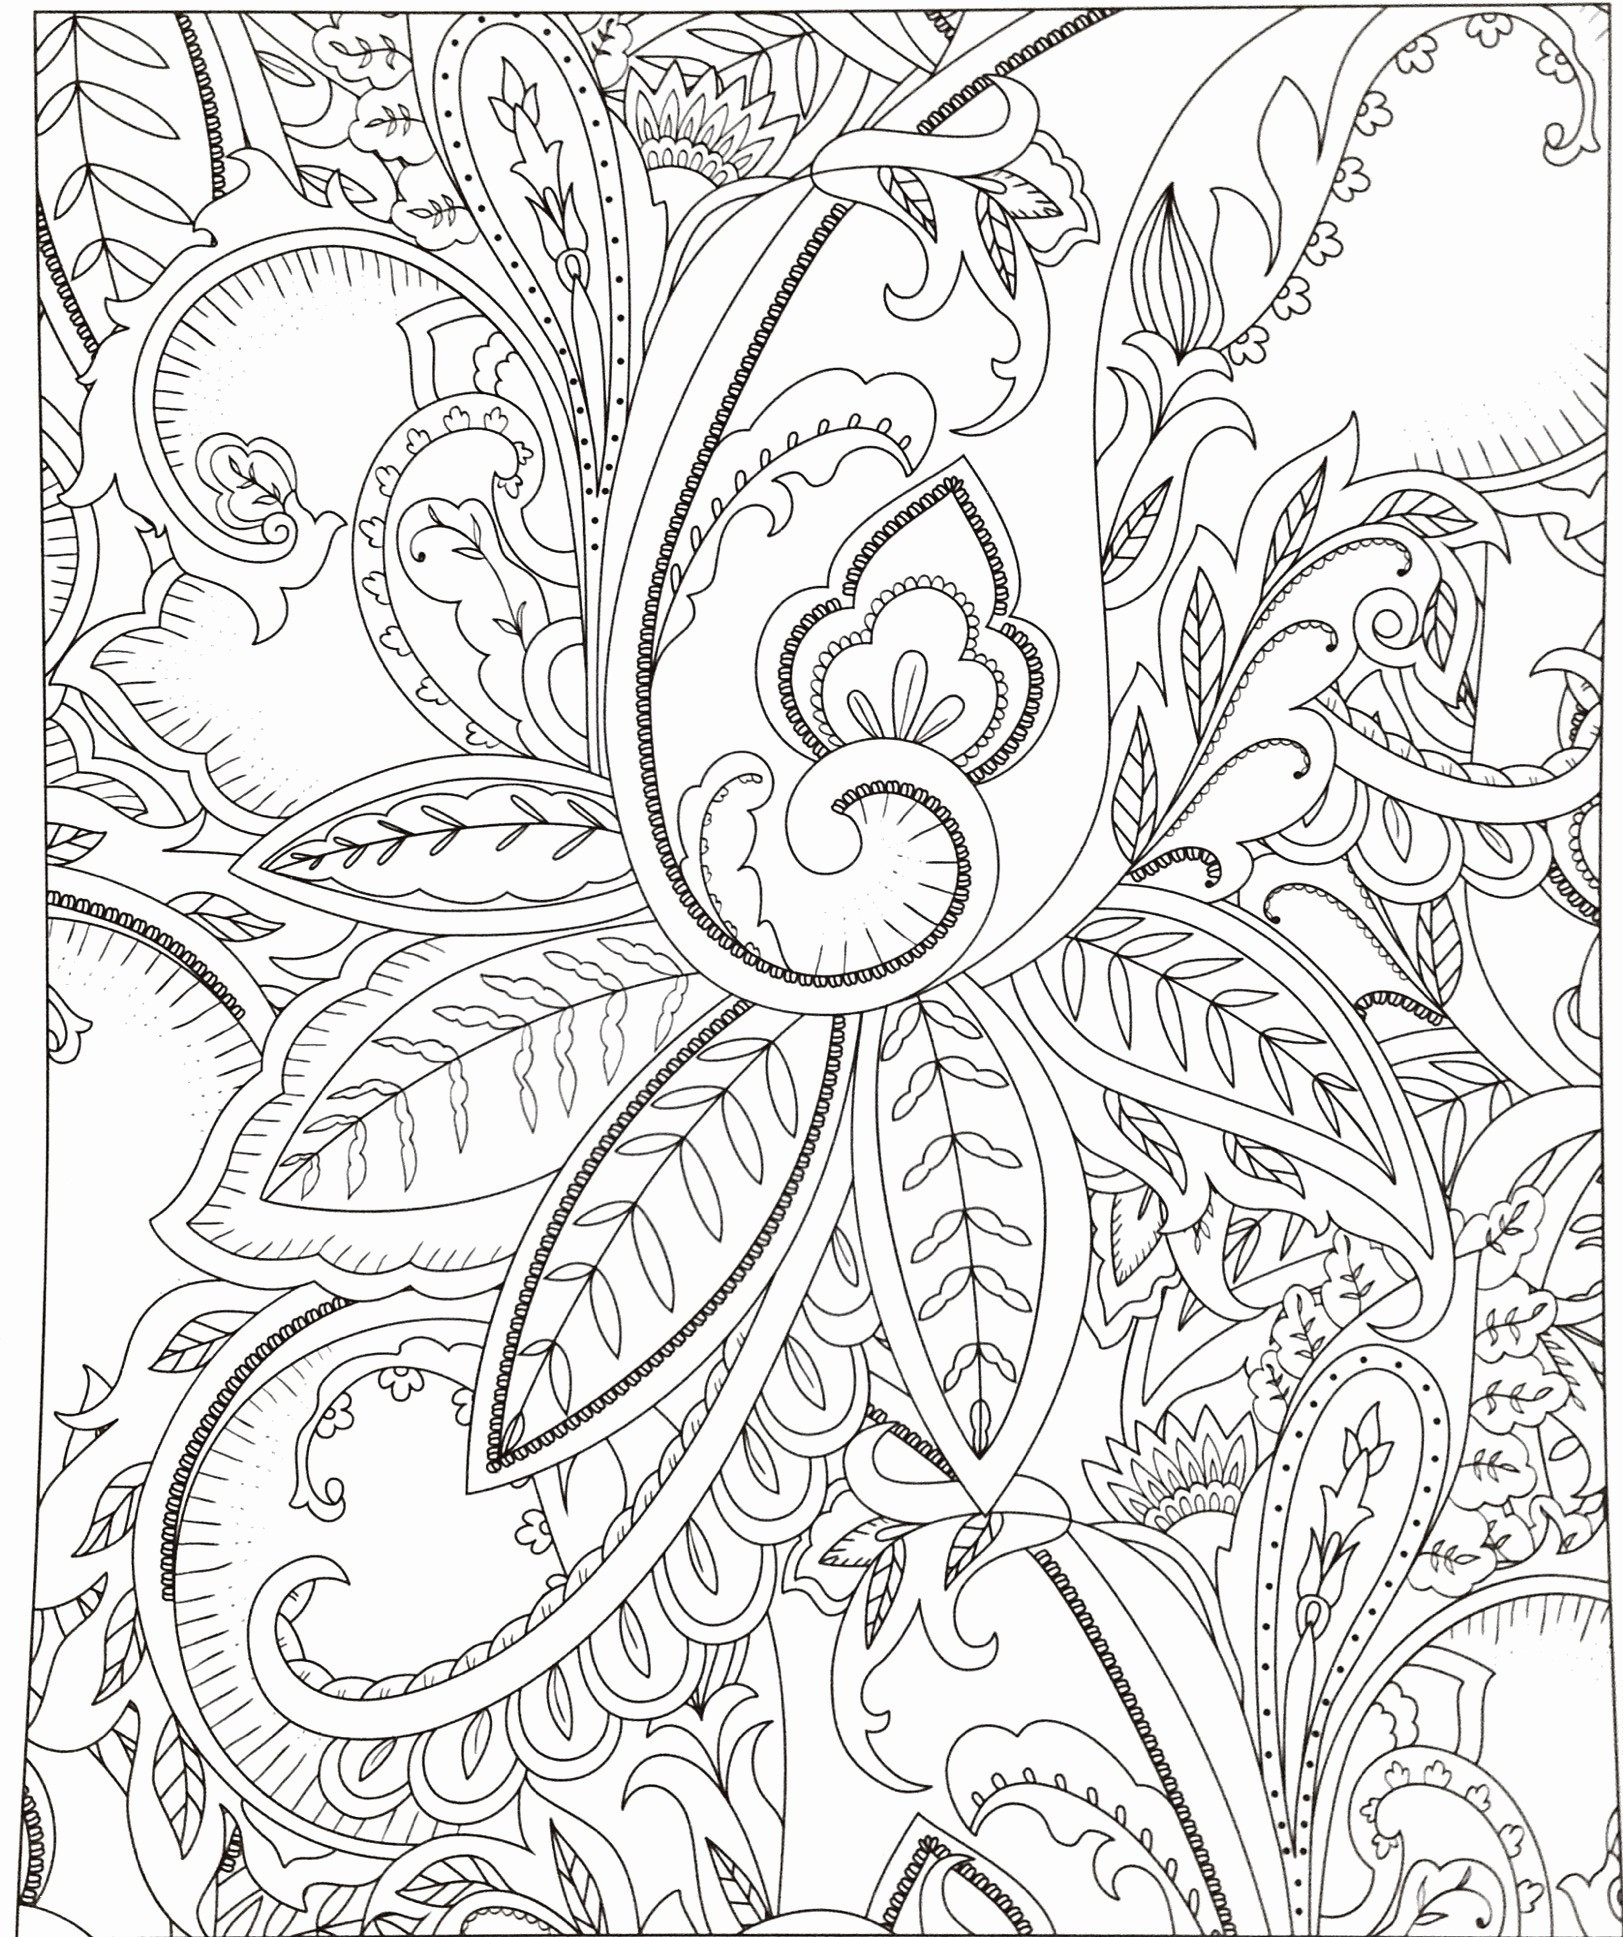 Black and White Flowers Art Lovely Black and White Flower Clipart Best Color Coloring Pages Lovely